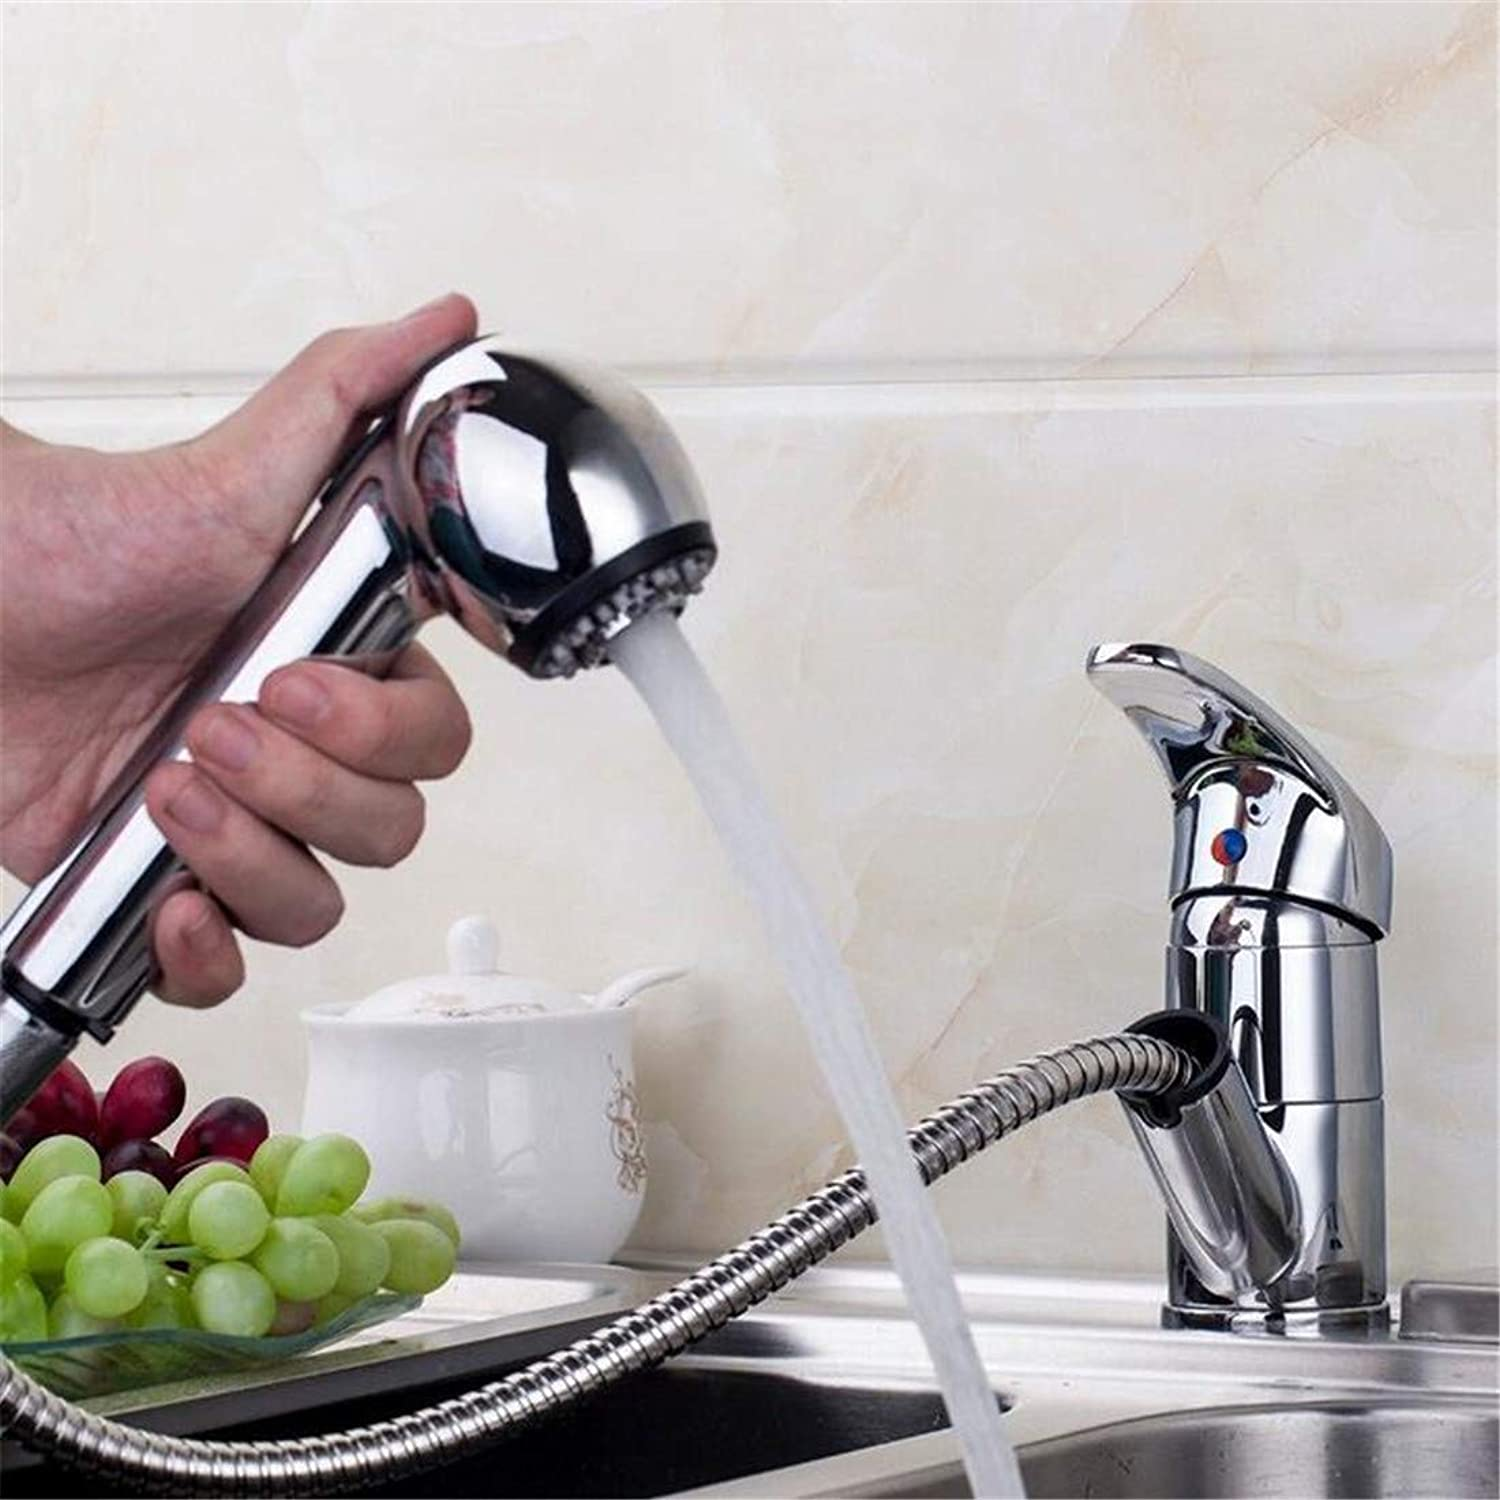 Chrome Brass Kitchen Faucet Pull Out Stream Spout Chrome Brass Deck Mounted Tap Kitchen Sink Faucet Hot & Cold Mixer Taps